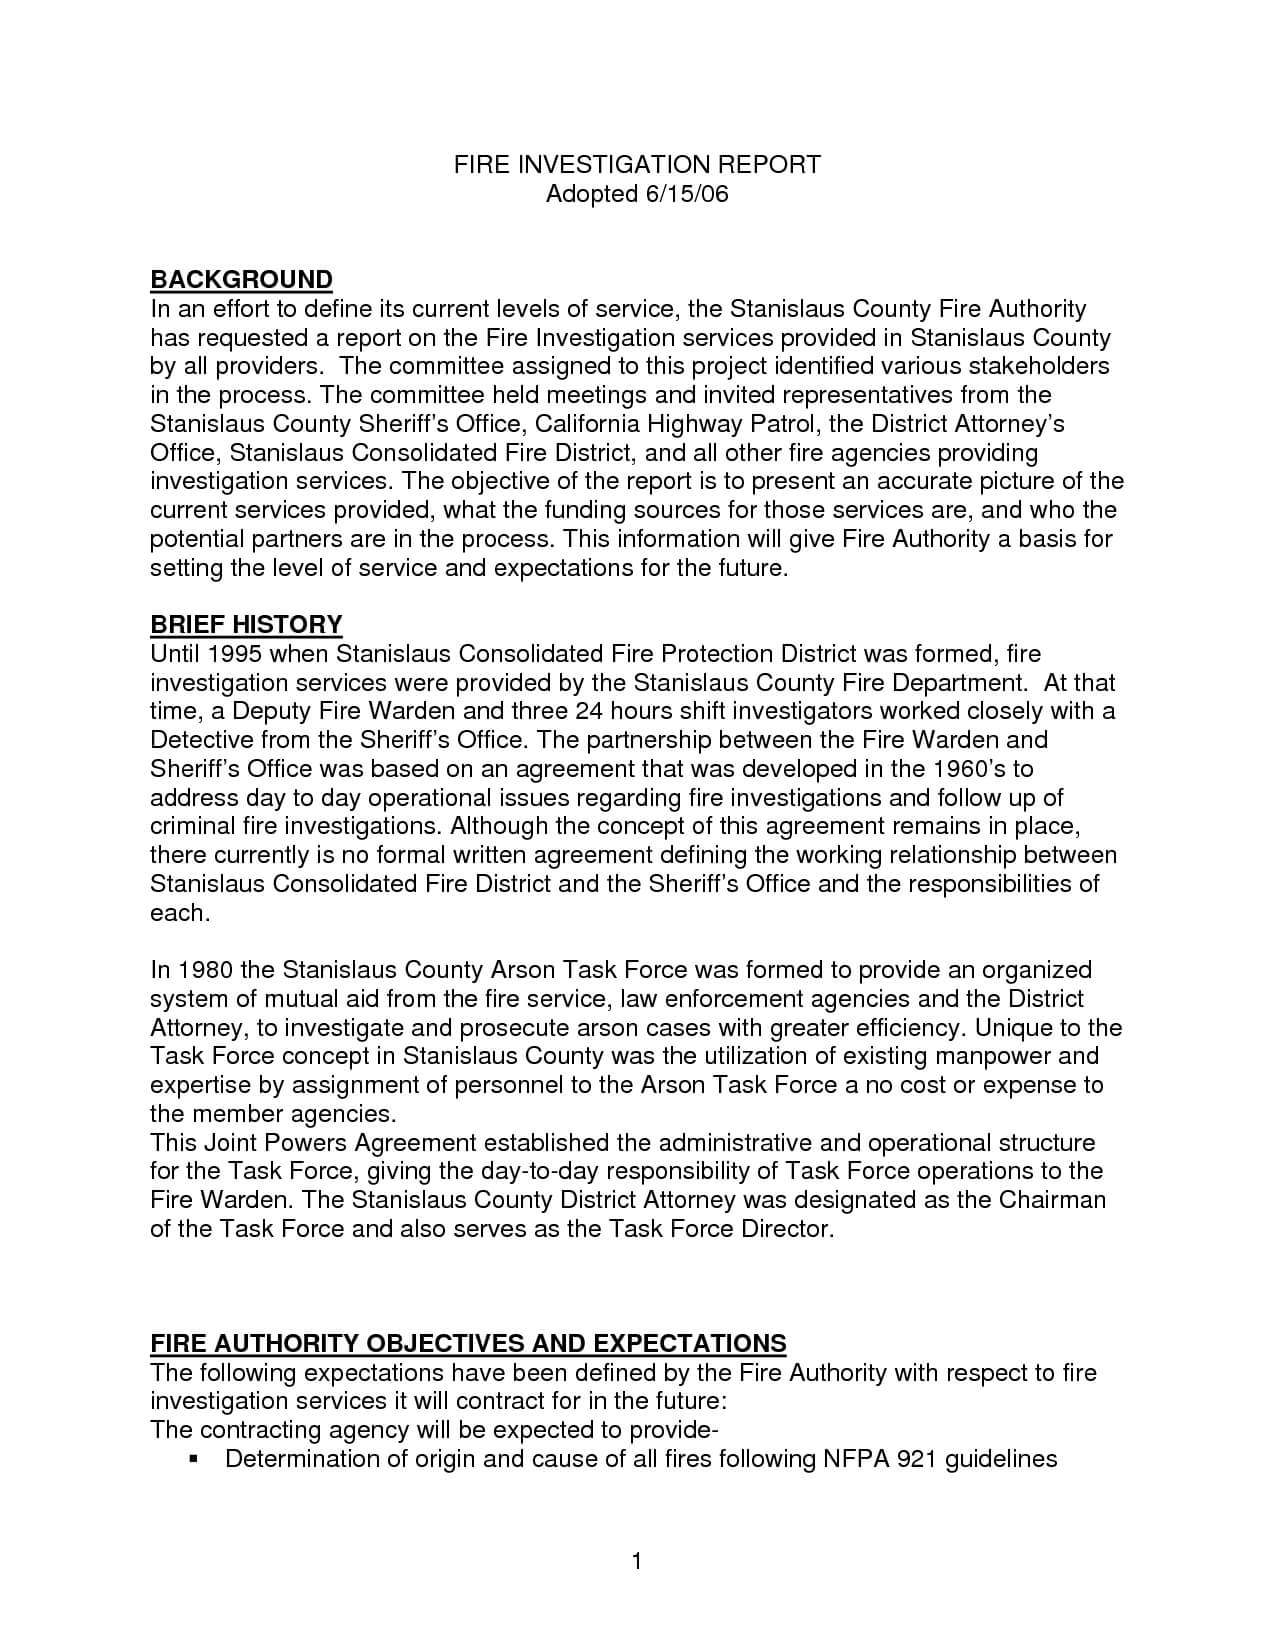 Best Photos Of Investigation Report Template - Sample For Sample Fire Investigation Report Template